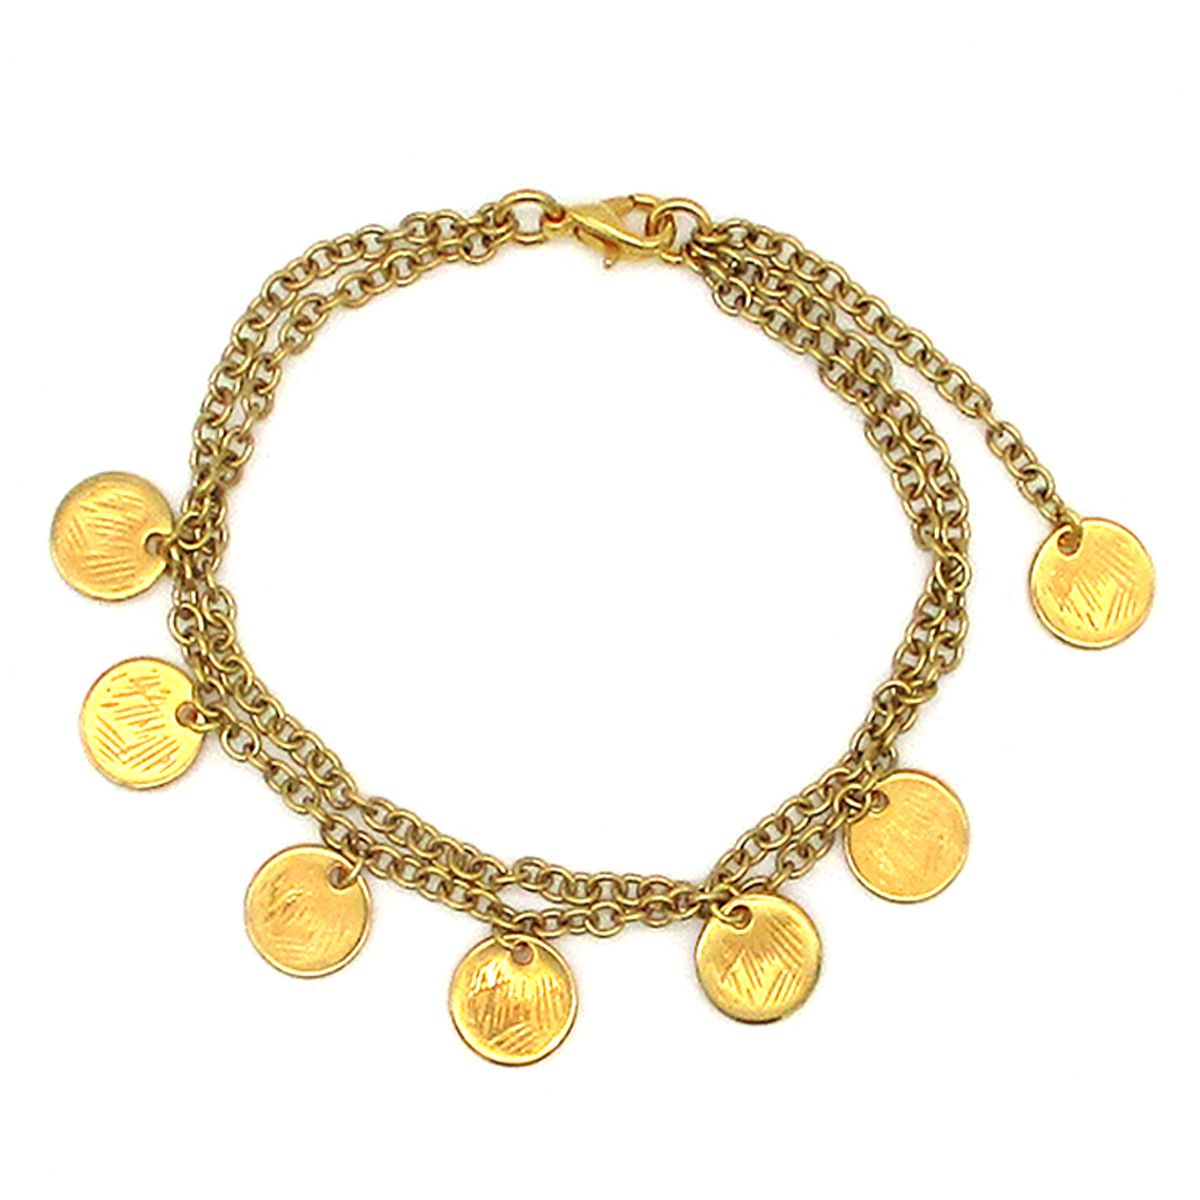 Europa double chain gold coin bracelet